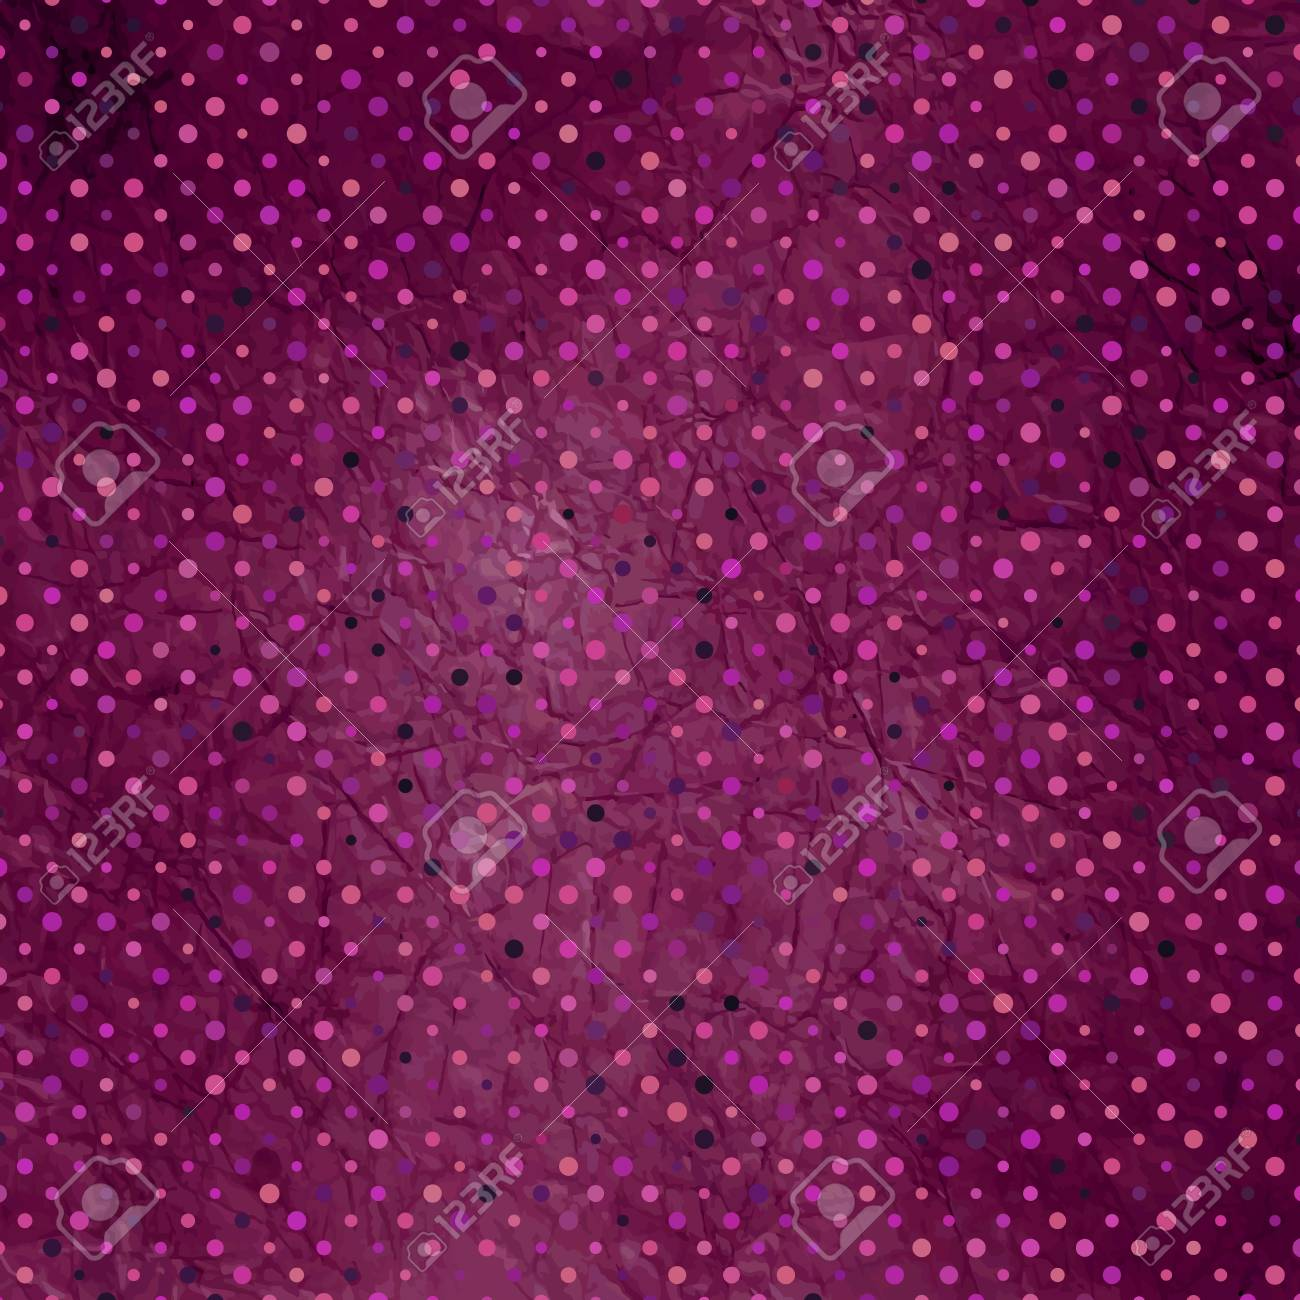 Aged and worn paper with polka dots Stock Vector - 13609747